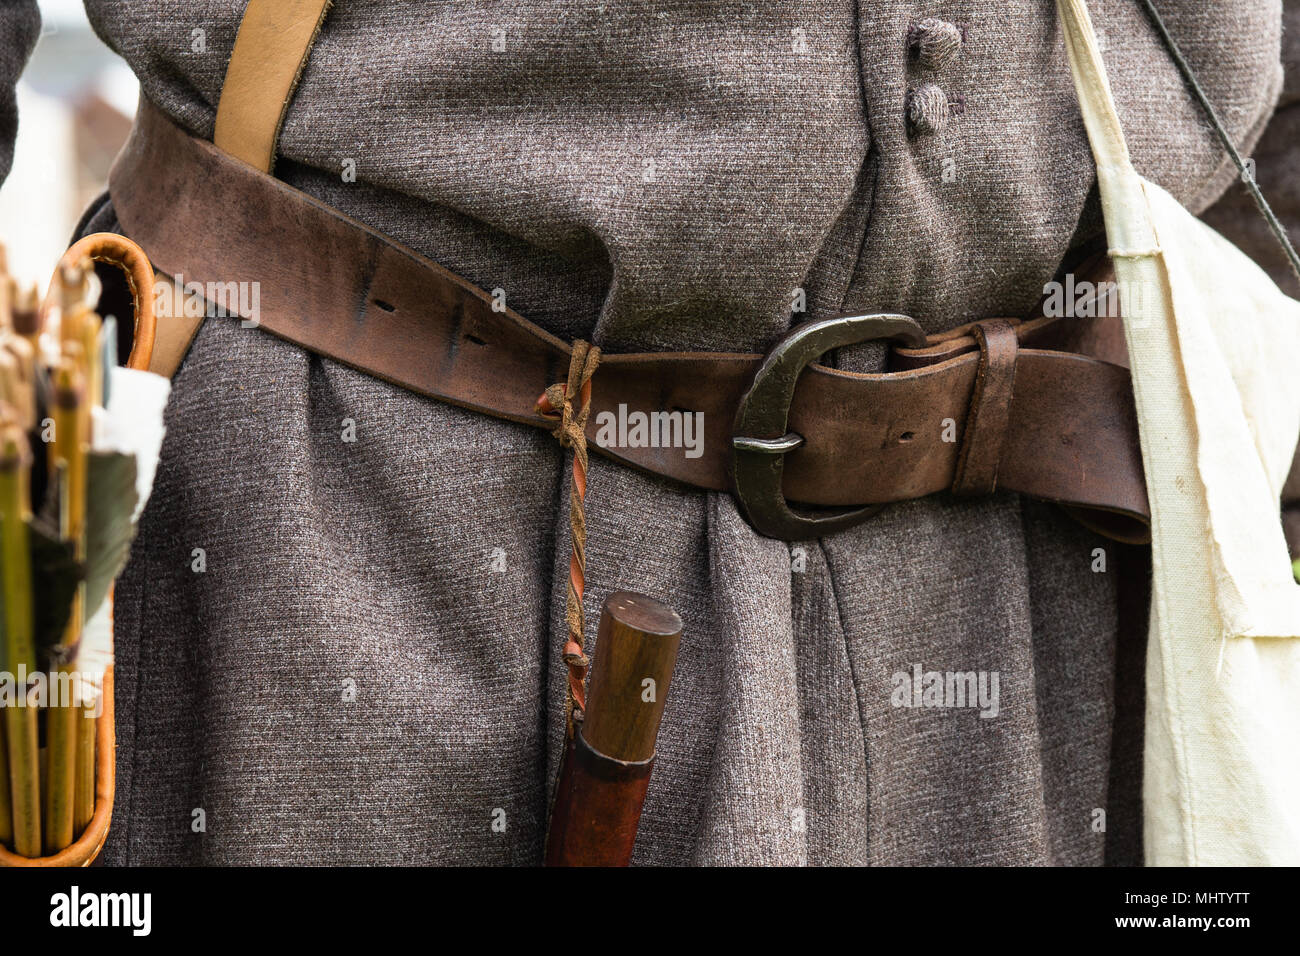 Details of a suit of a medieval archer. Leather belt, a knife and a quiver with a bunch of arrows are attached to a belt. A coarth texture of an overc - Stock Image